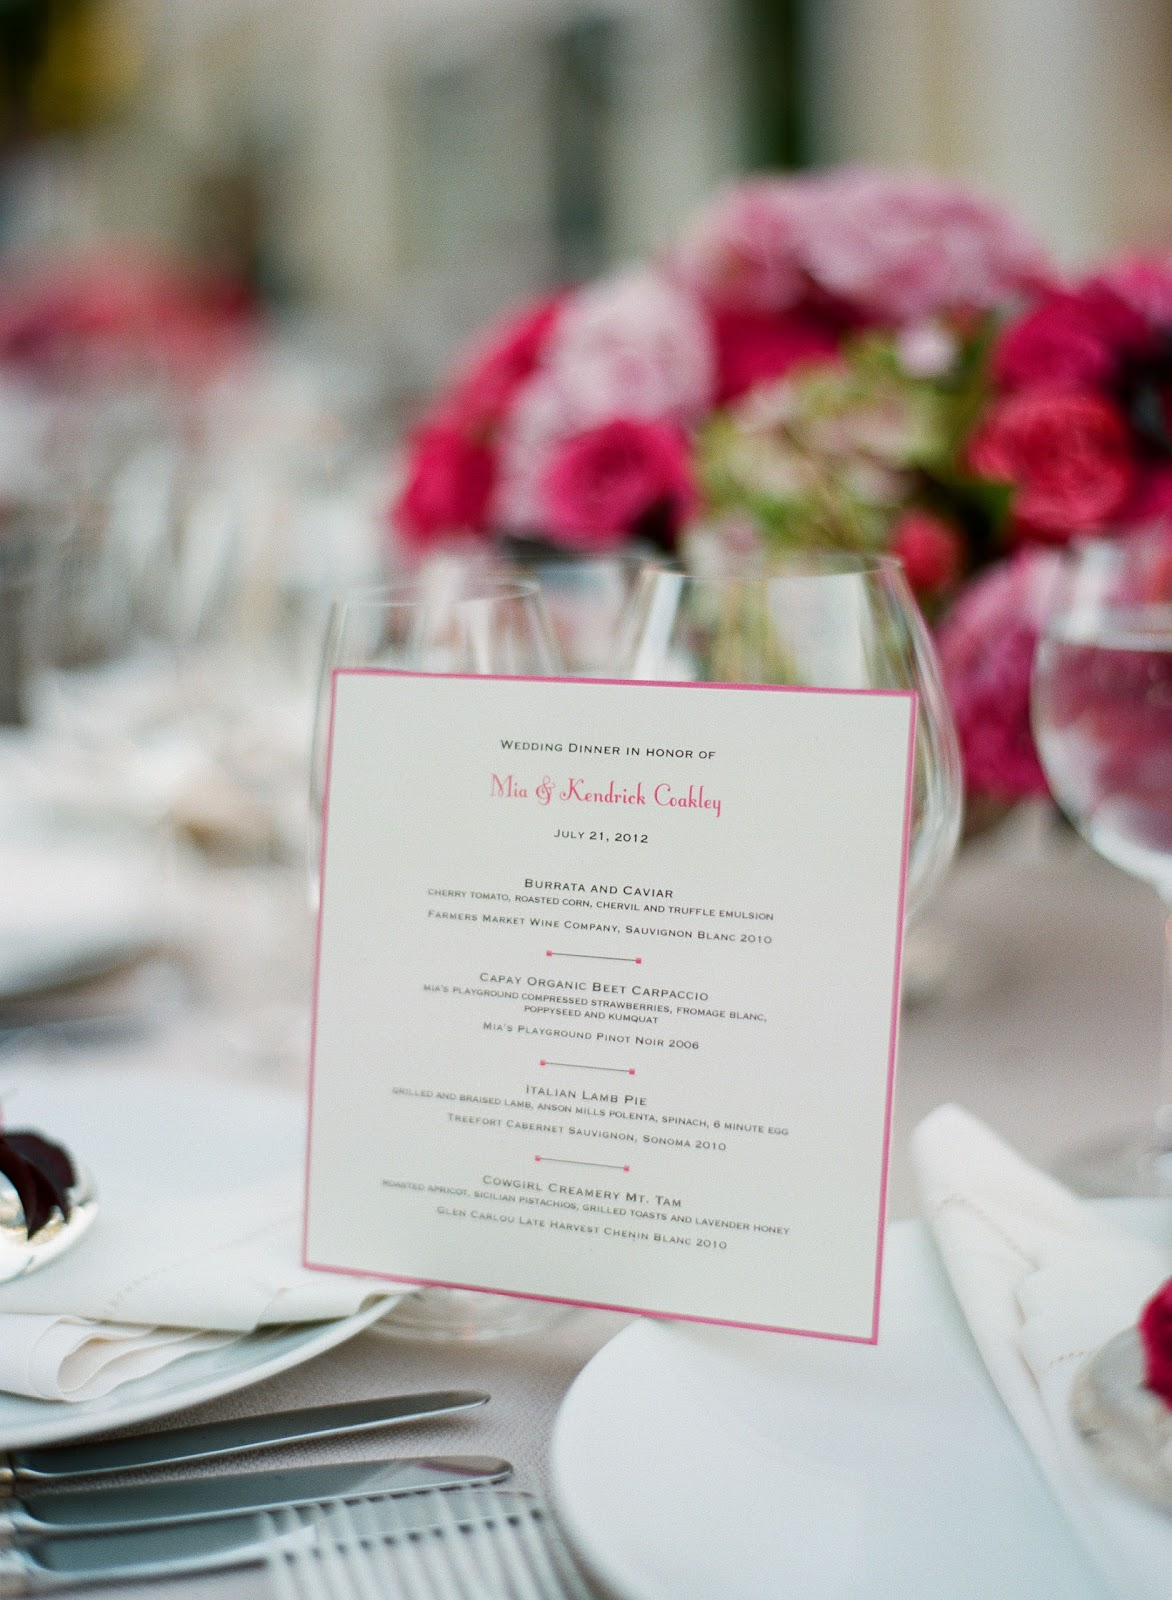 laurie arons blog: Tyler Florence Catered Sonoma Wedding Menu